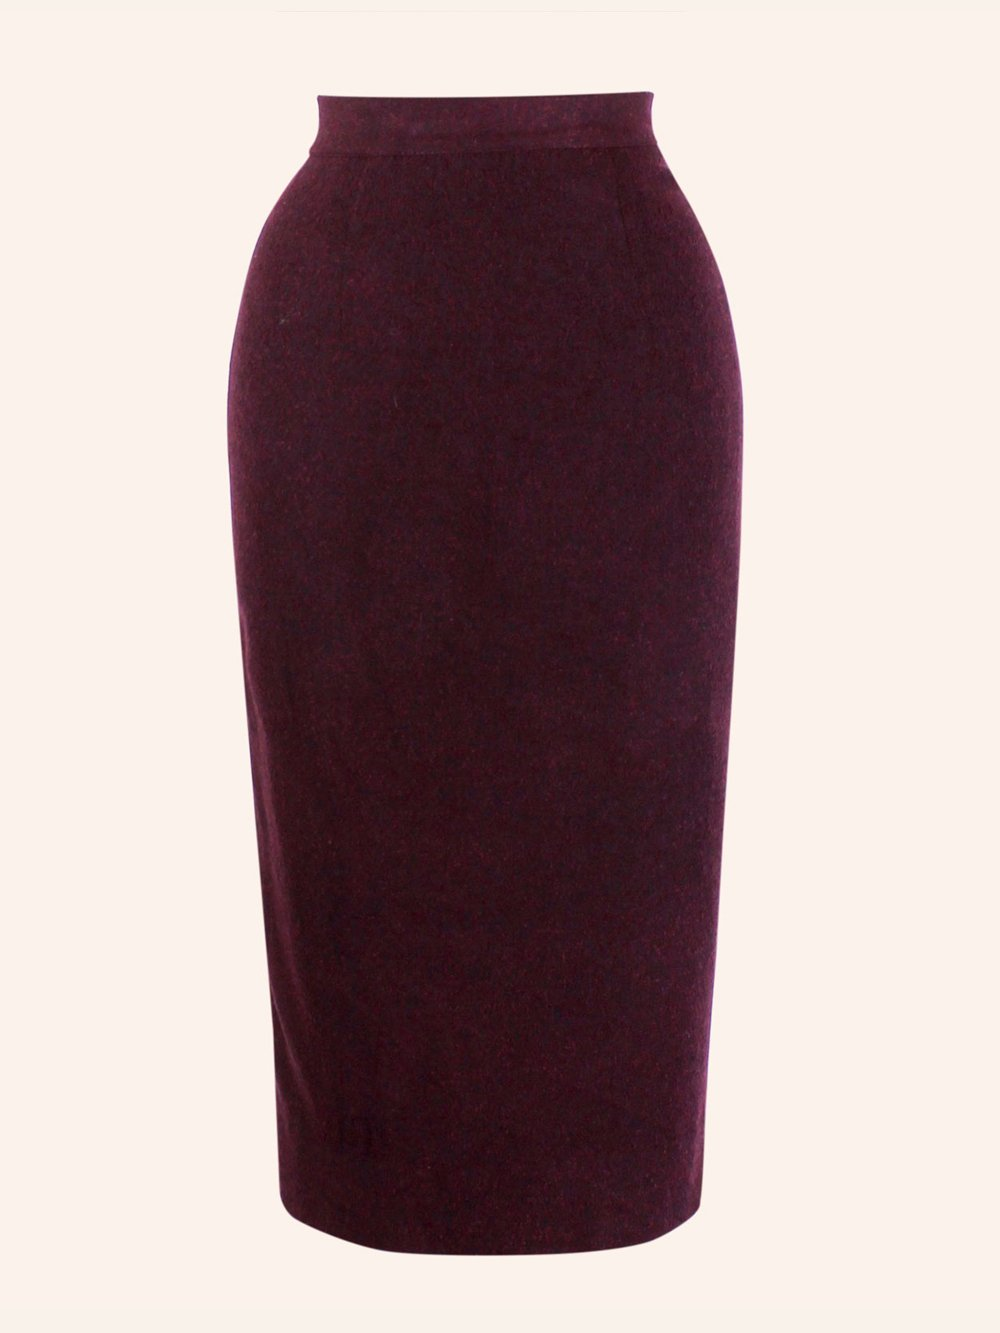 pencil skirt lined